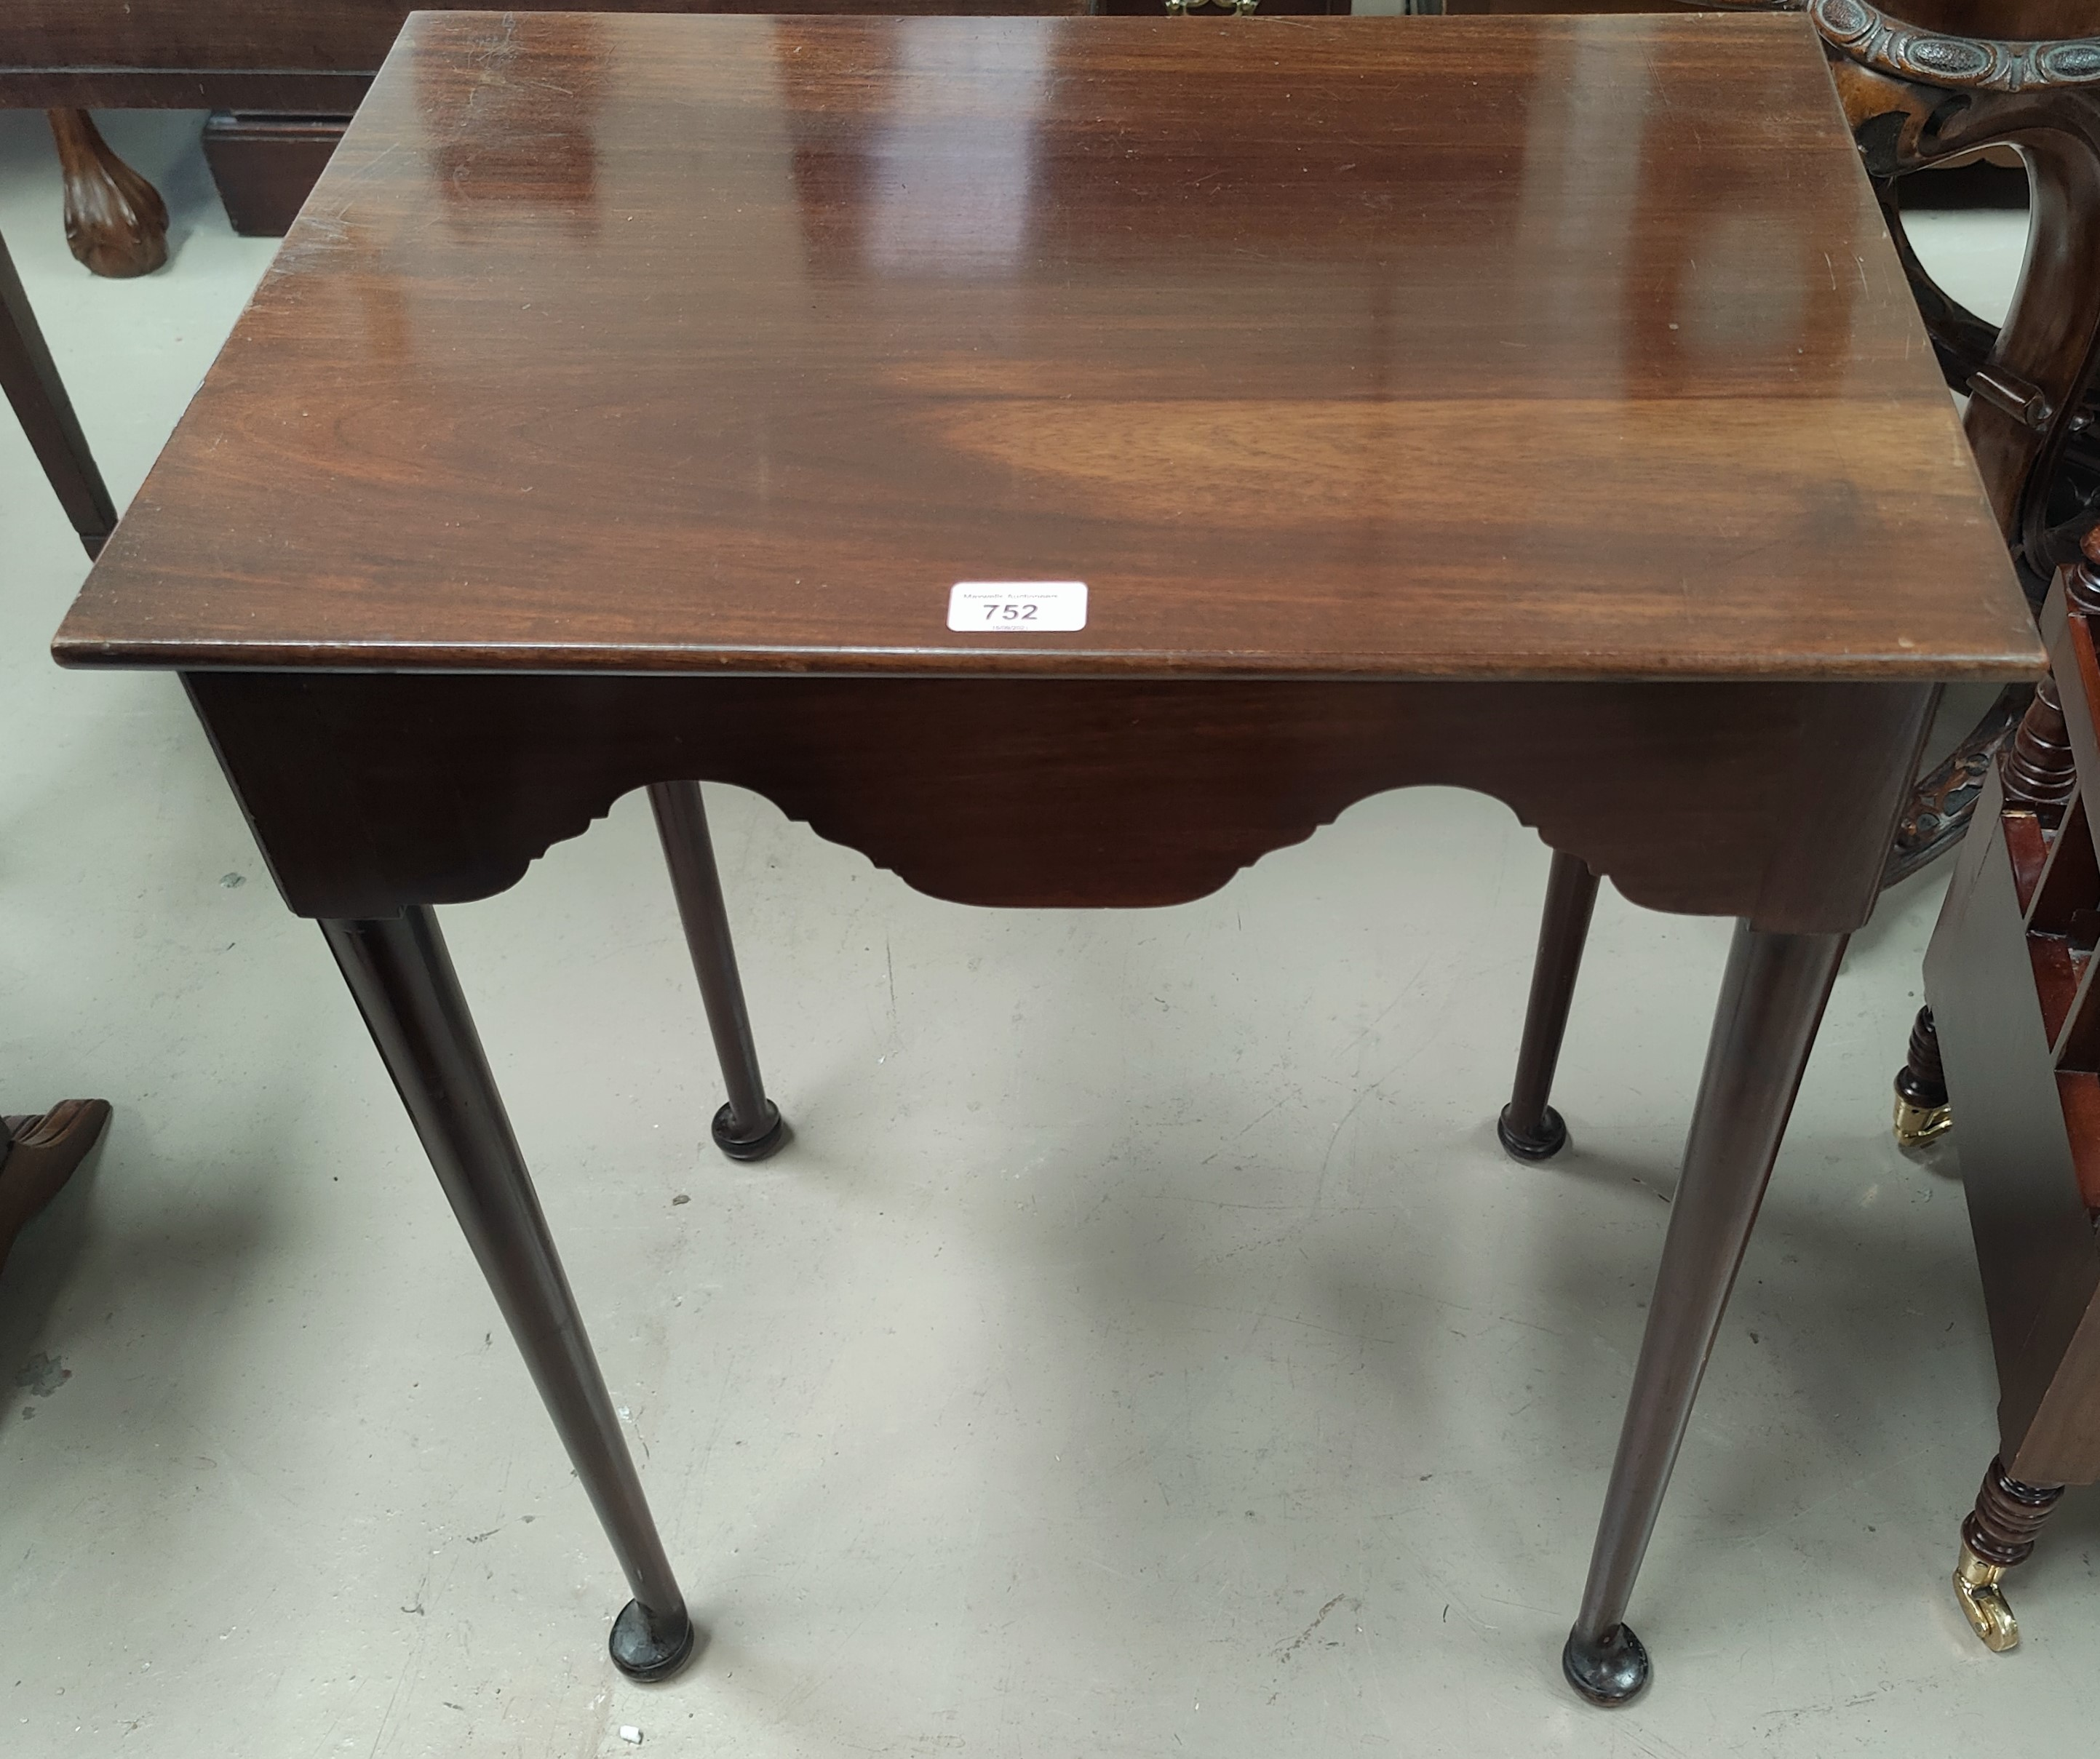 A Georgian style mahogany side table on pad feet, rectangular top with shaped under frieze, 55 cm